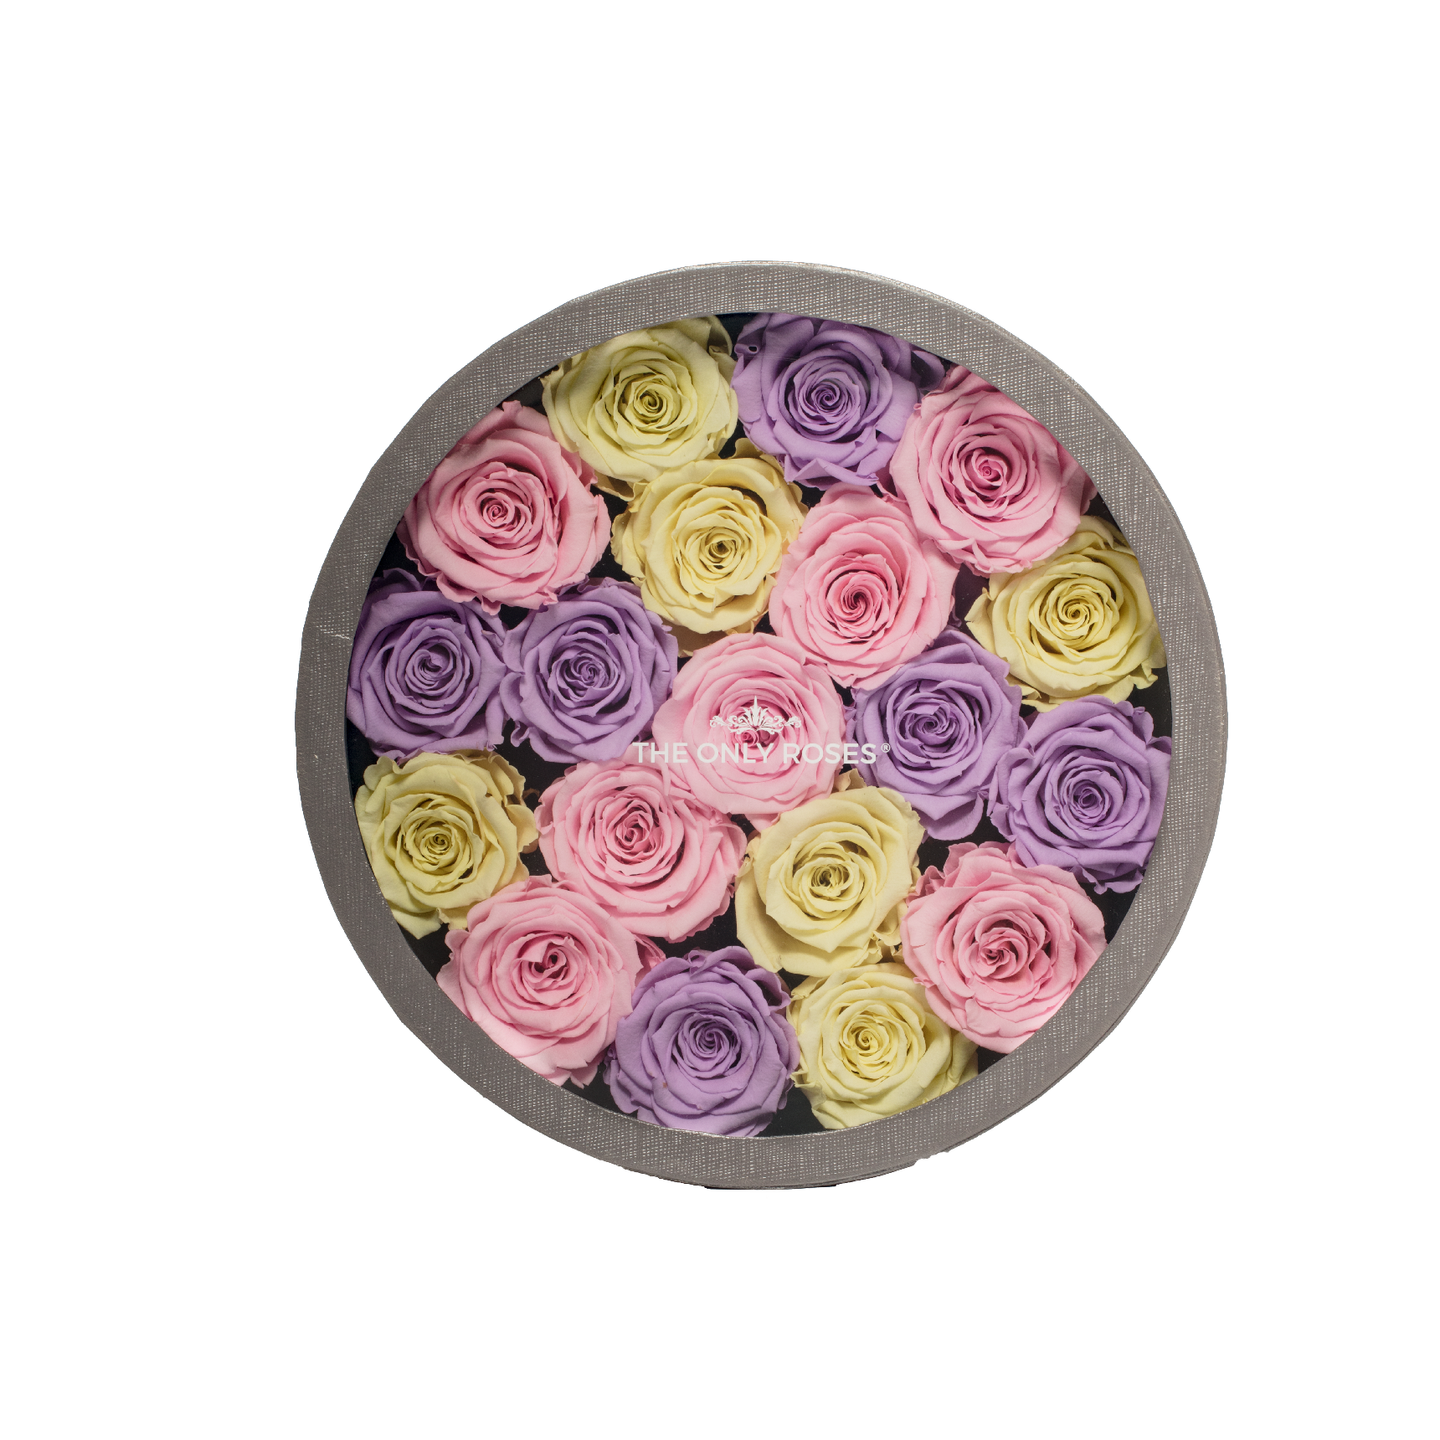 Candy Preserved Roses | Medium Round Classic Grey Box - The Only Roses